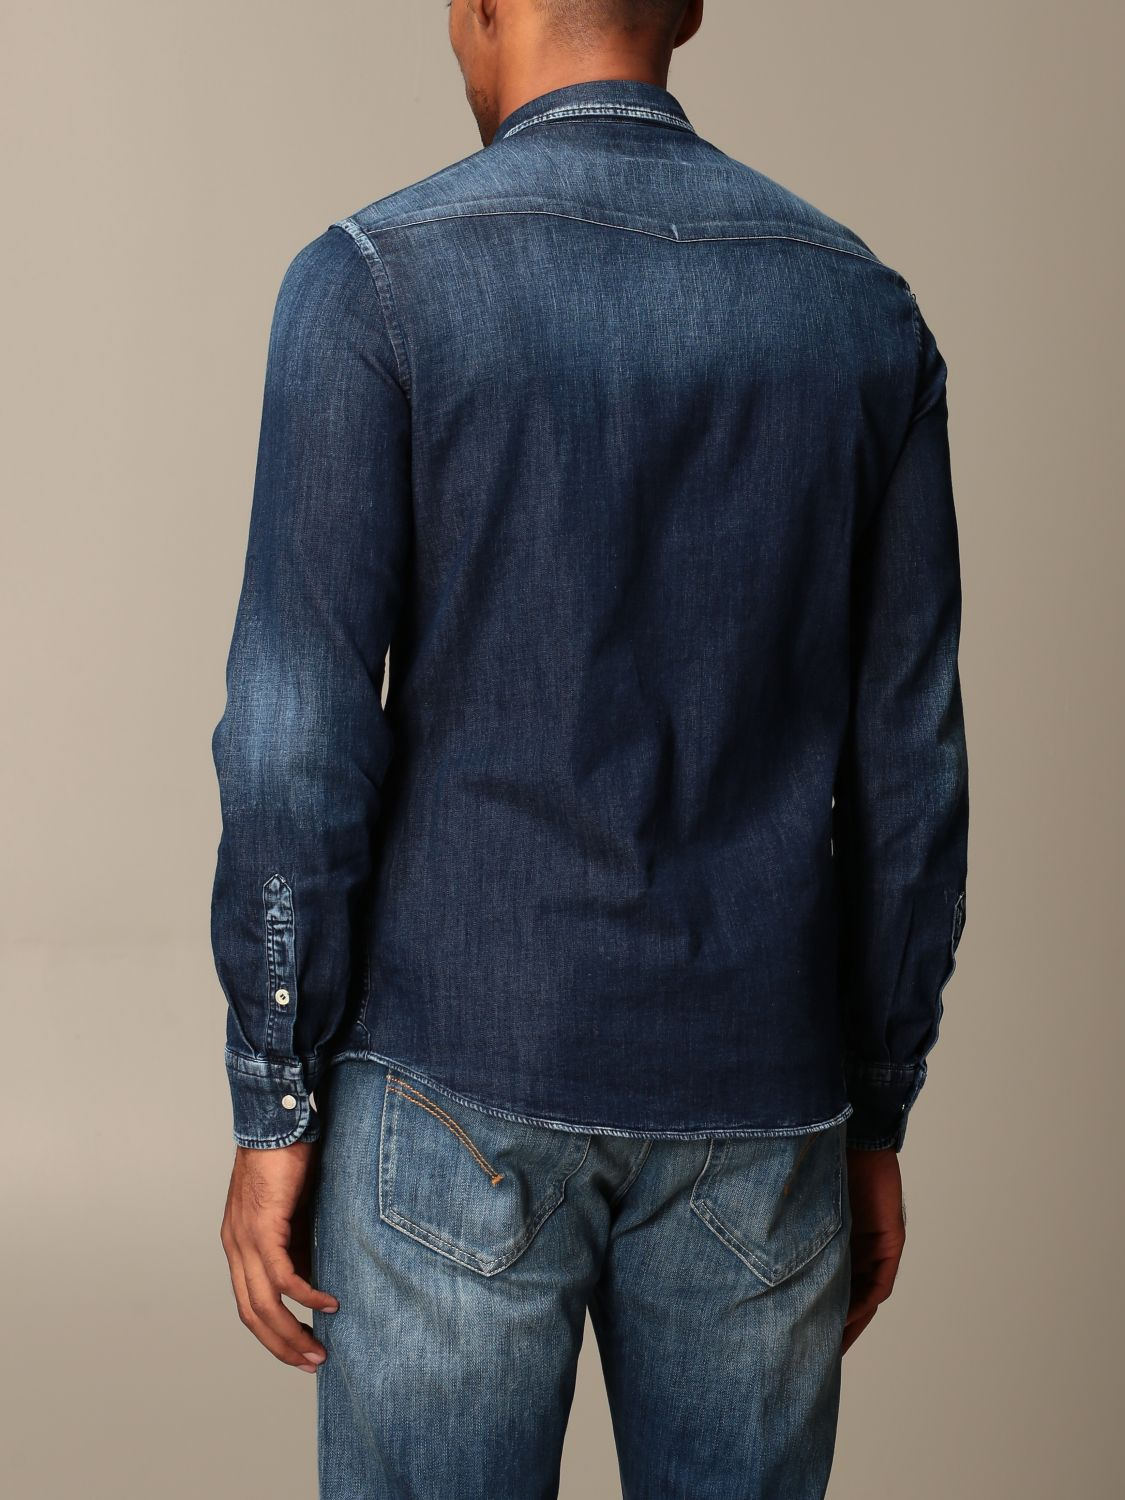 Shirt Dondup: Dondup denim shirt in used denim blue 3